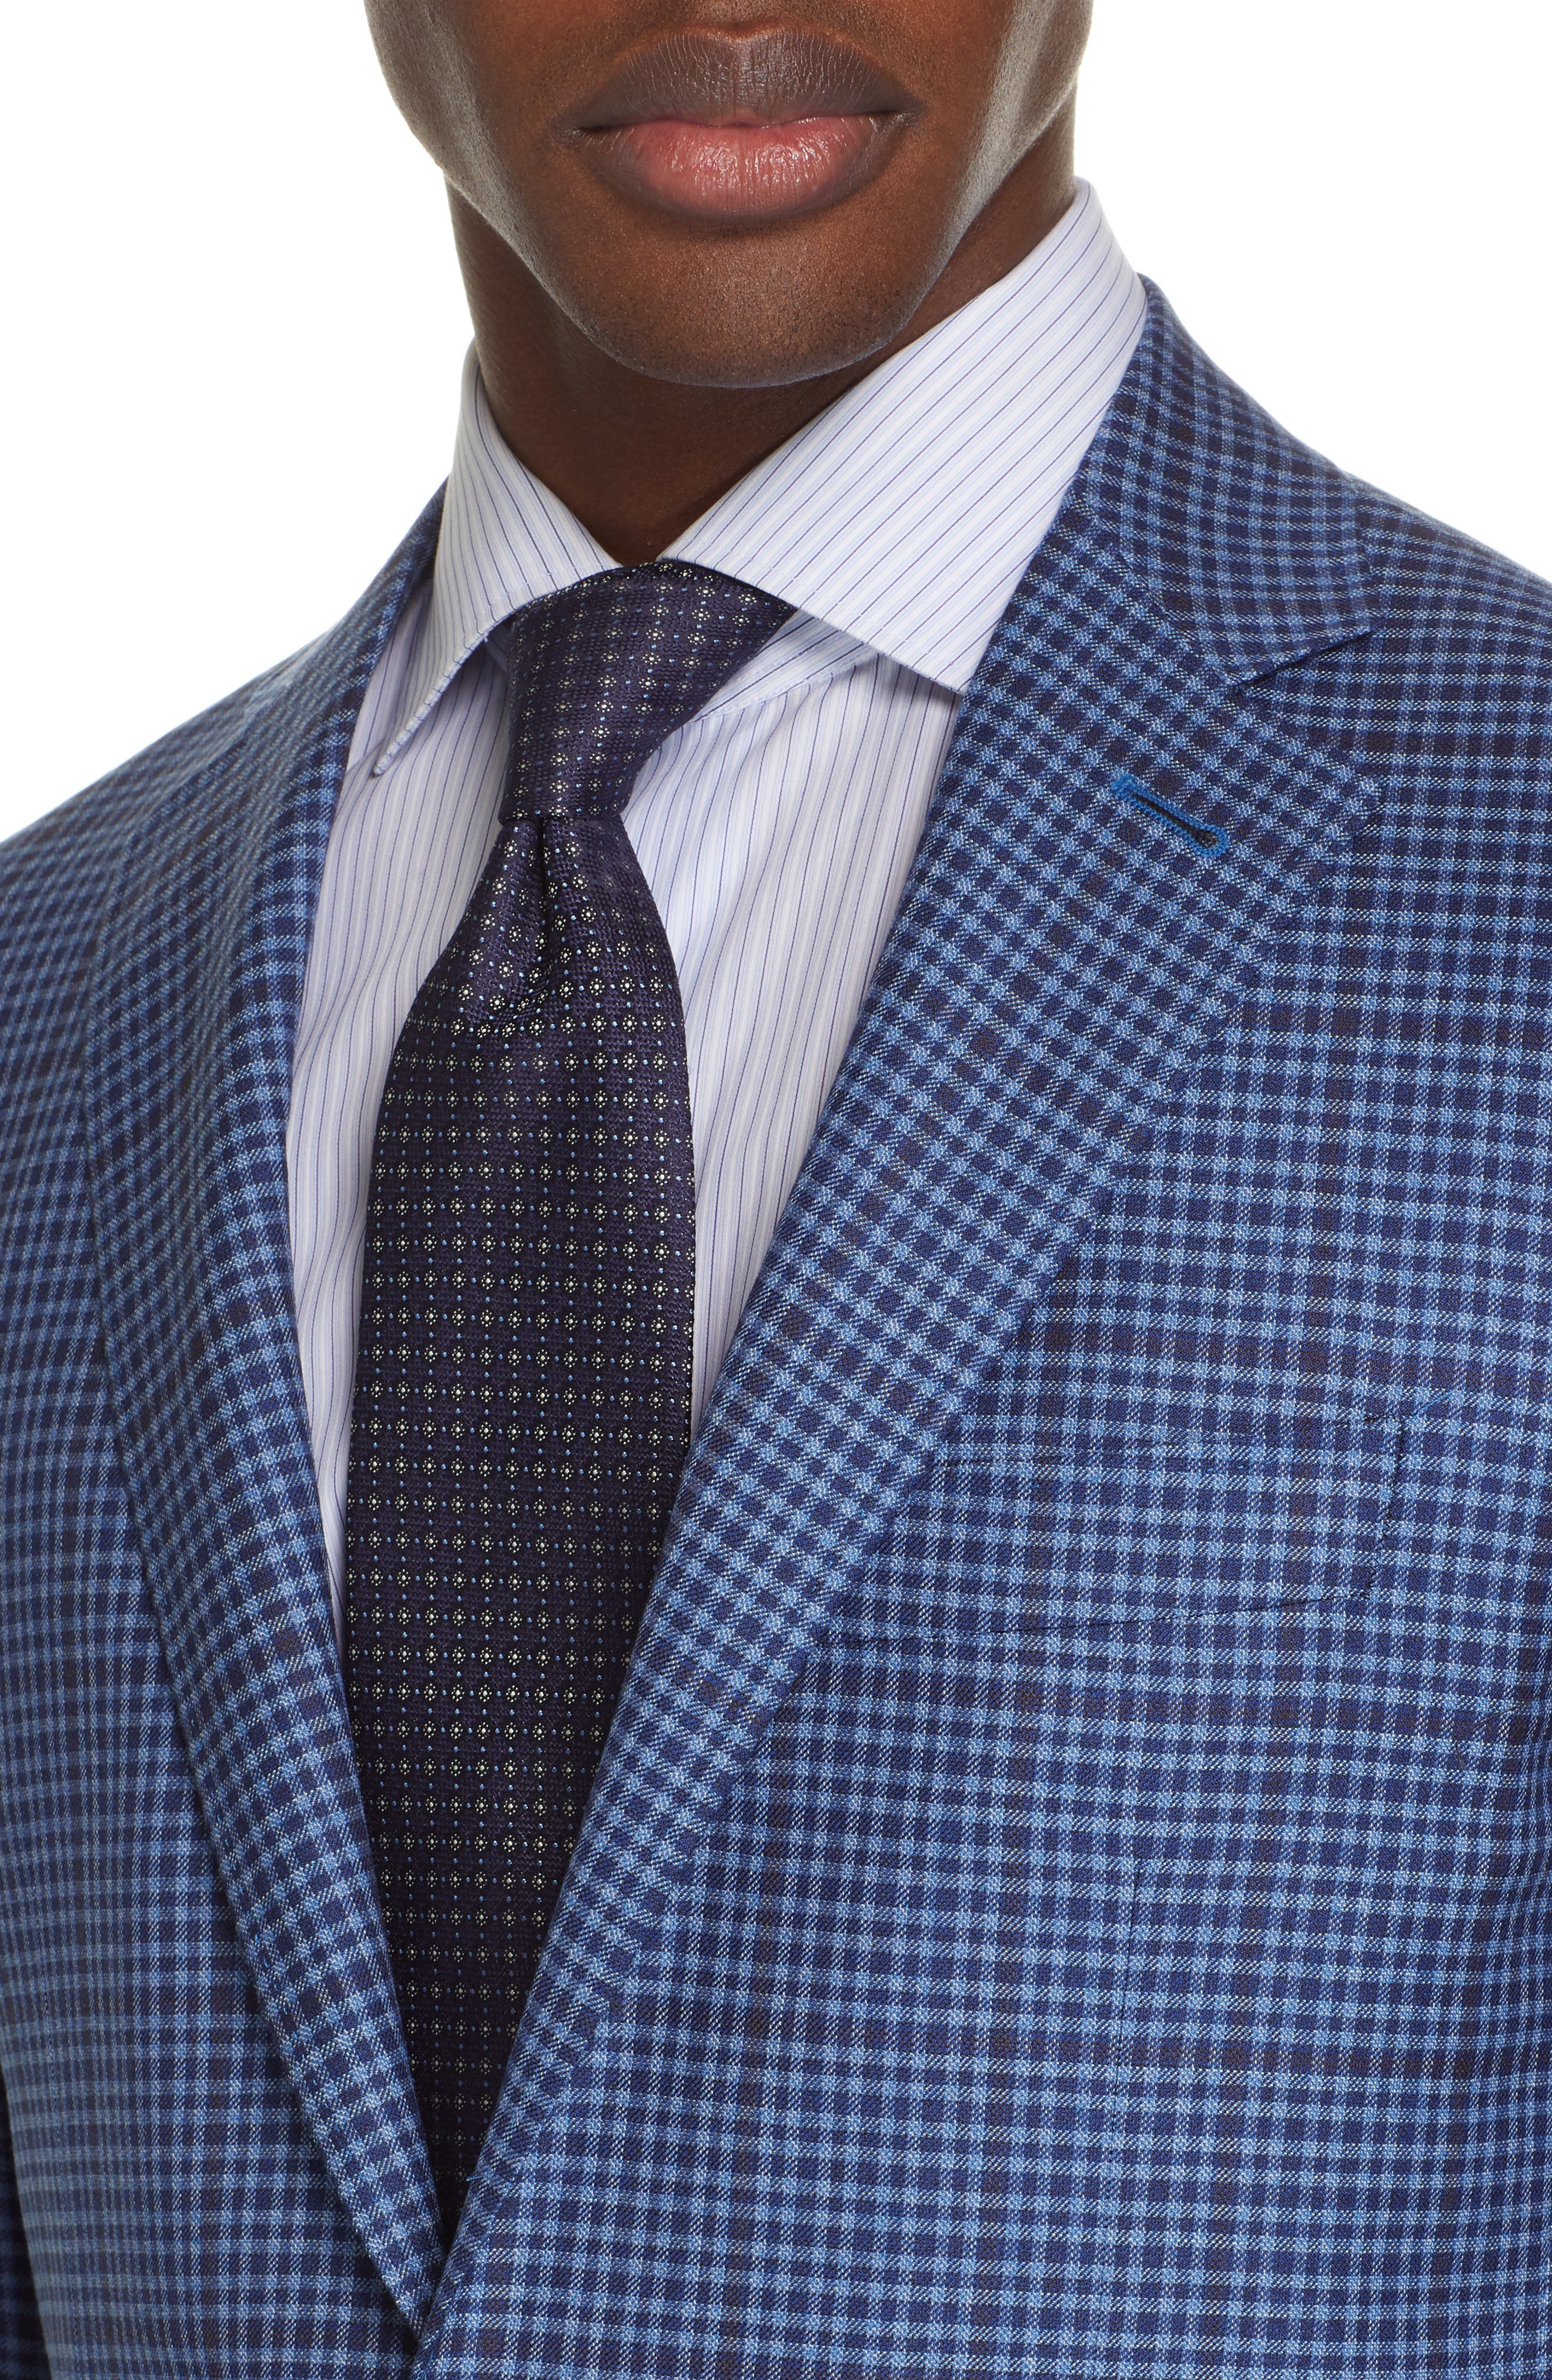 CANALI, Kei Classic Fit Check Wool Sport Coat, Alternate thumbnail 4, color, BLUE